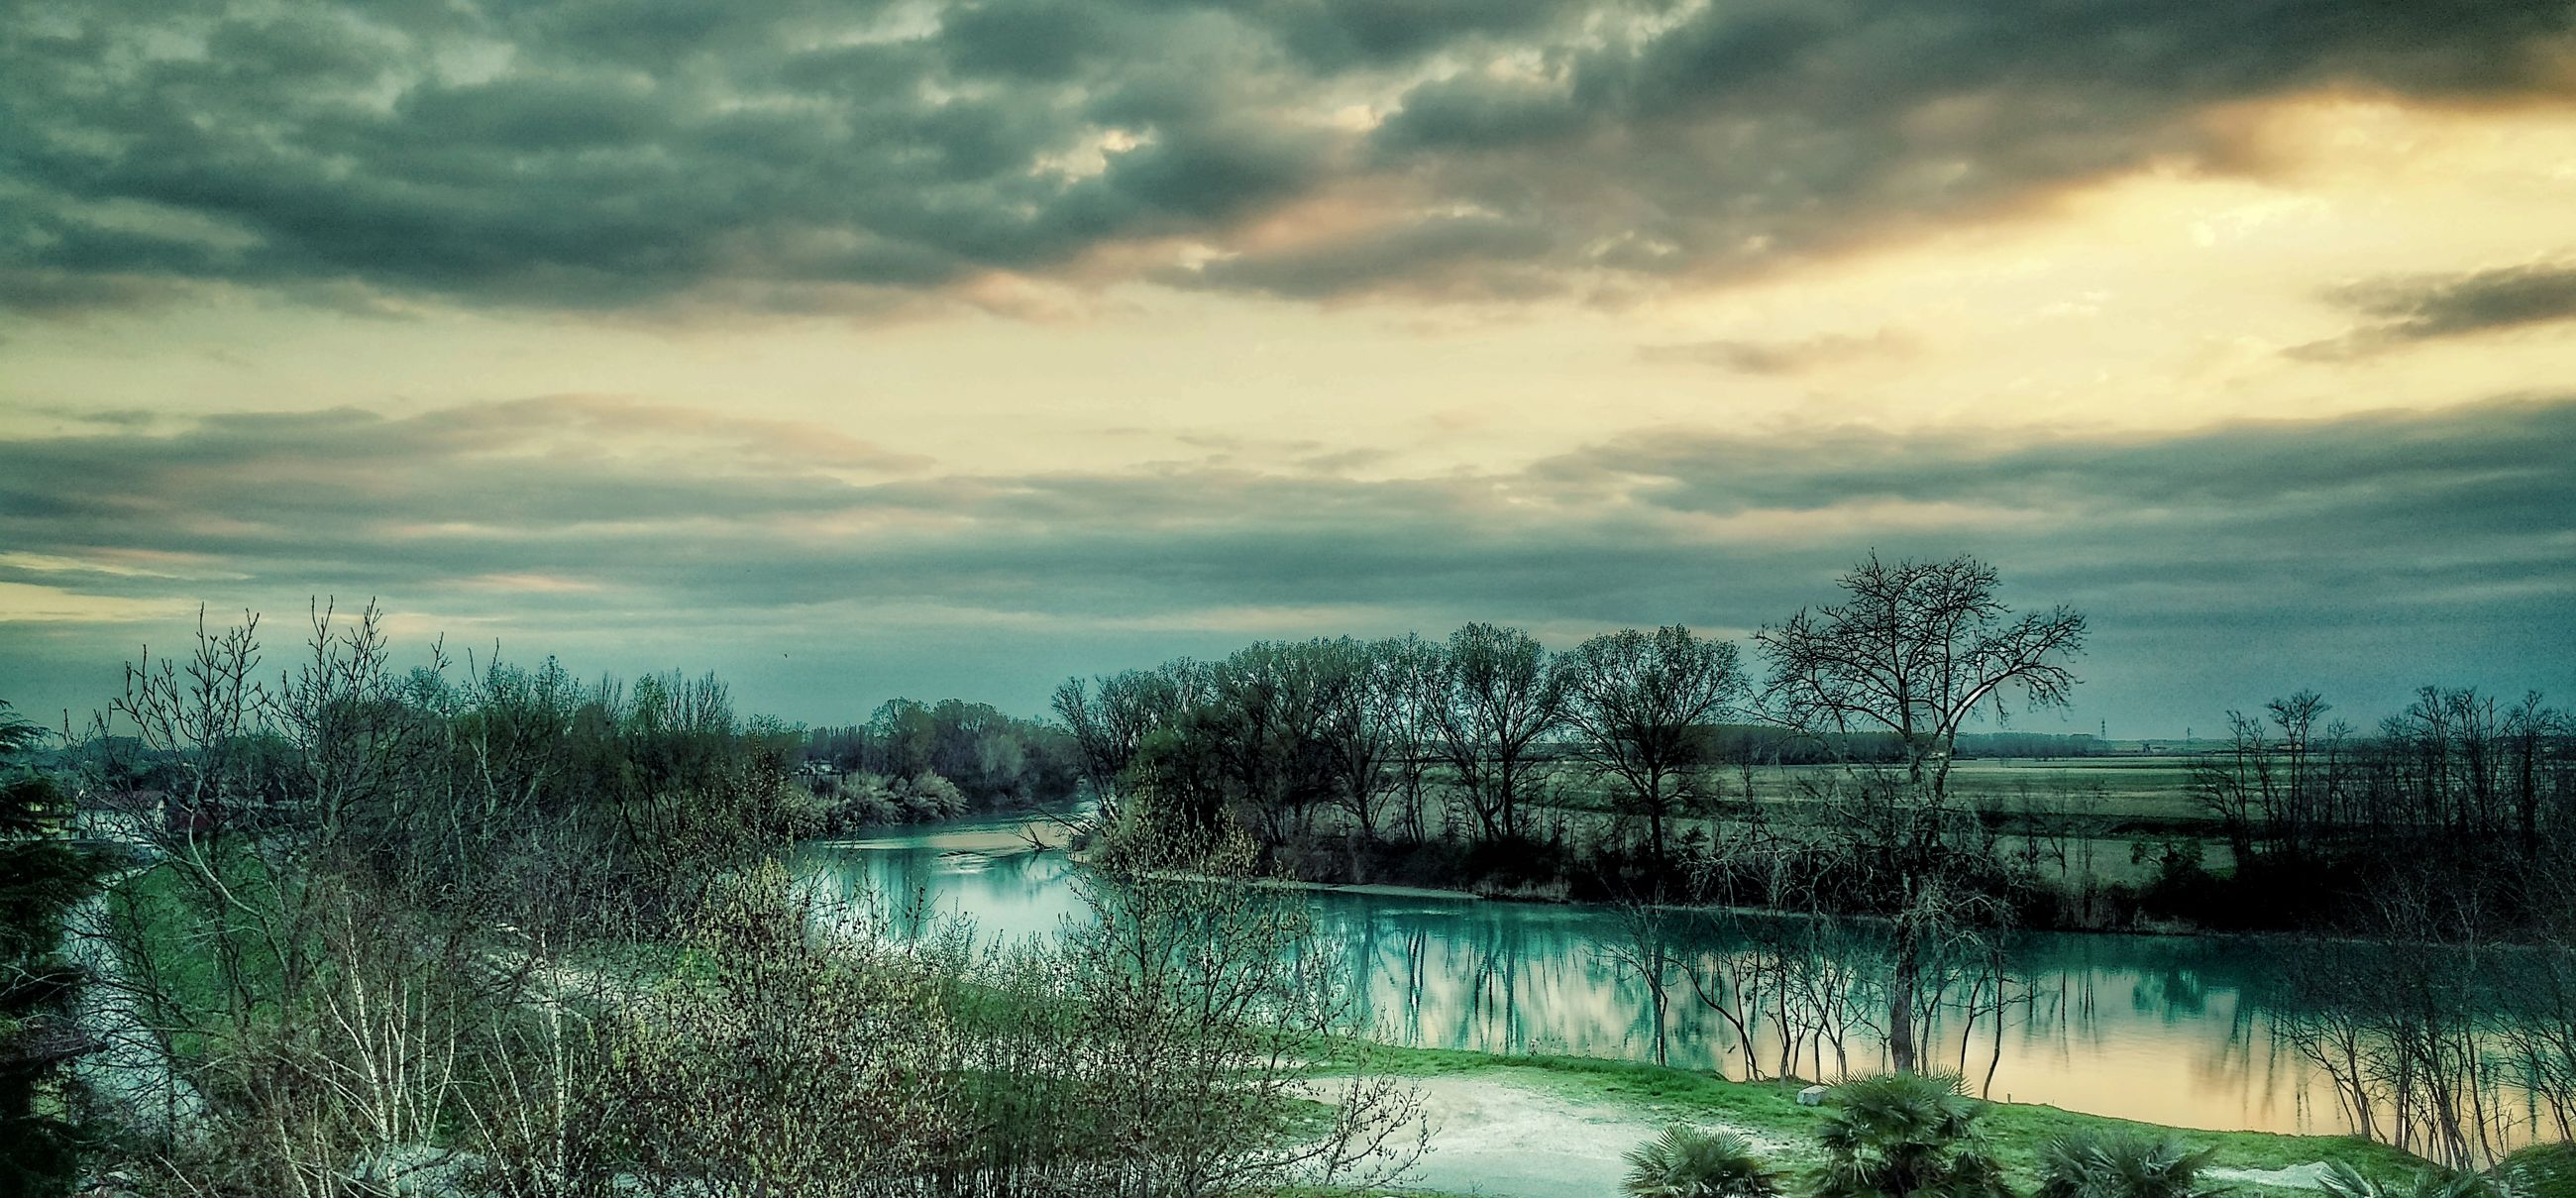 sky, tree, nature, cloud - sky, water, sunset, no people, tranquility, beauty in nature, backgrounds, landscape, scenics, outdoors, day